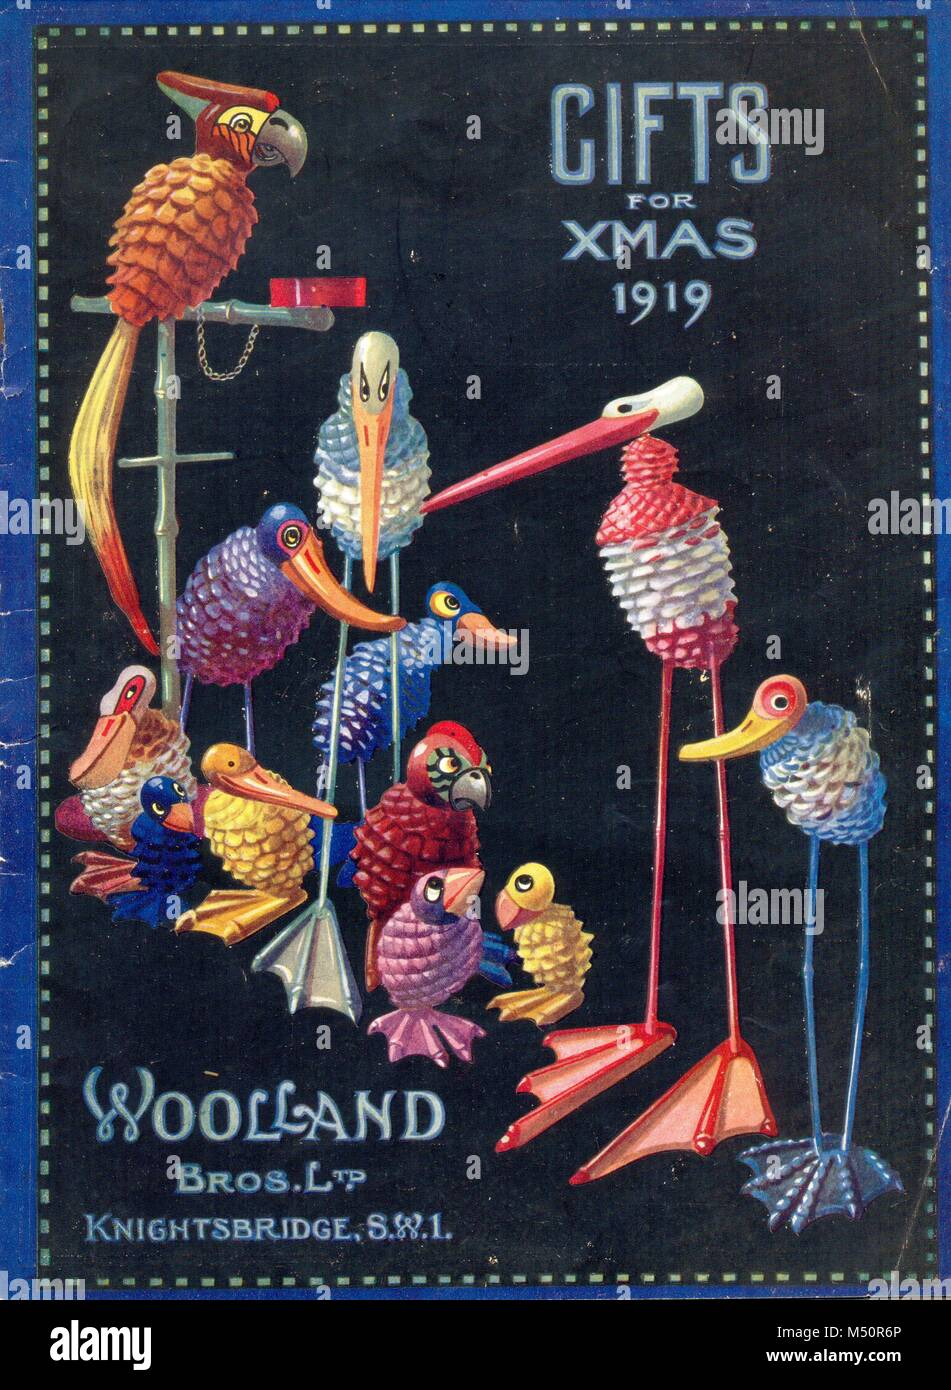 Ltd Christmas Catalog.Christmas Gift Catalogue Cover For Woolland Bros Ltd 1919